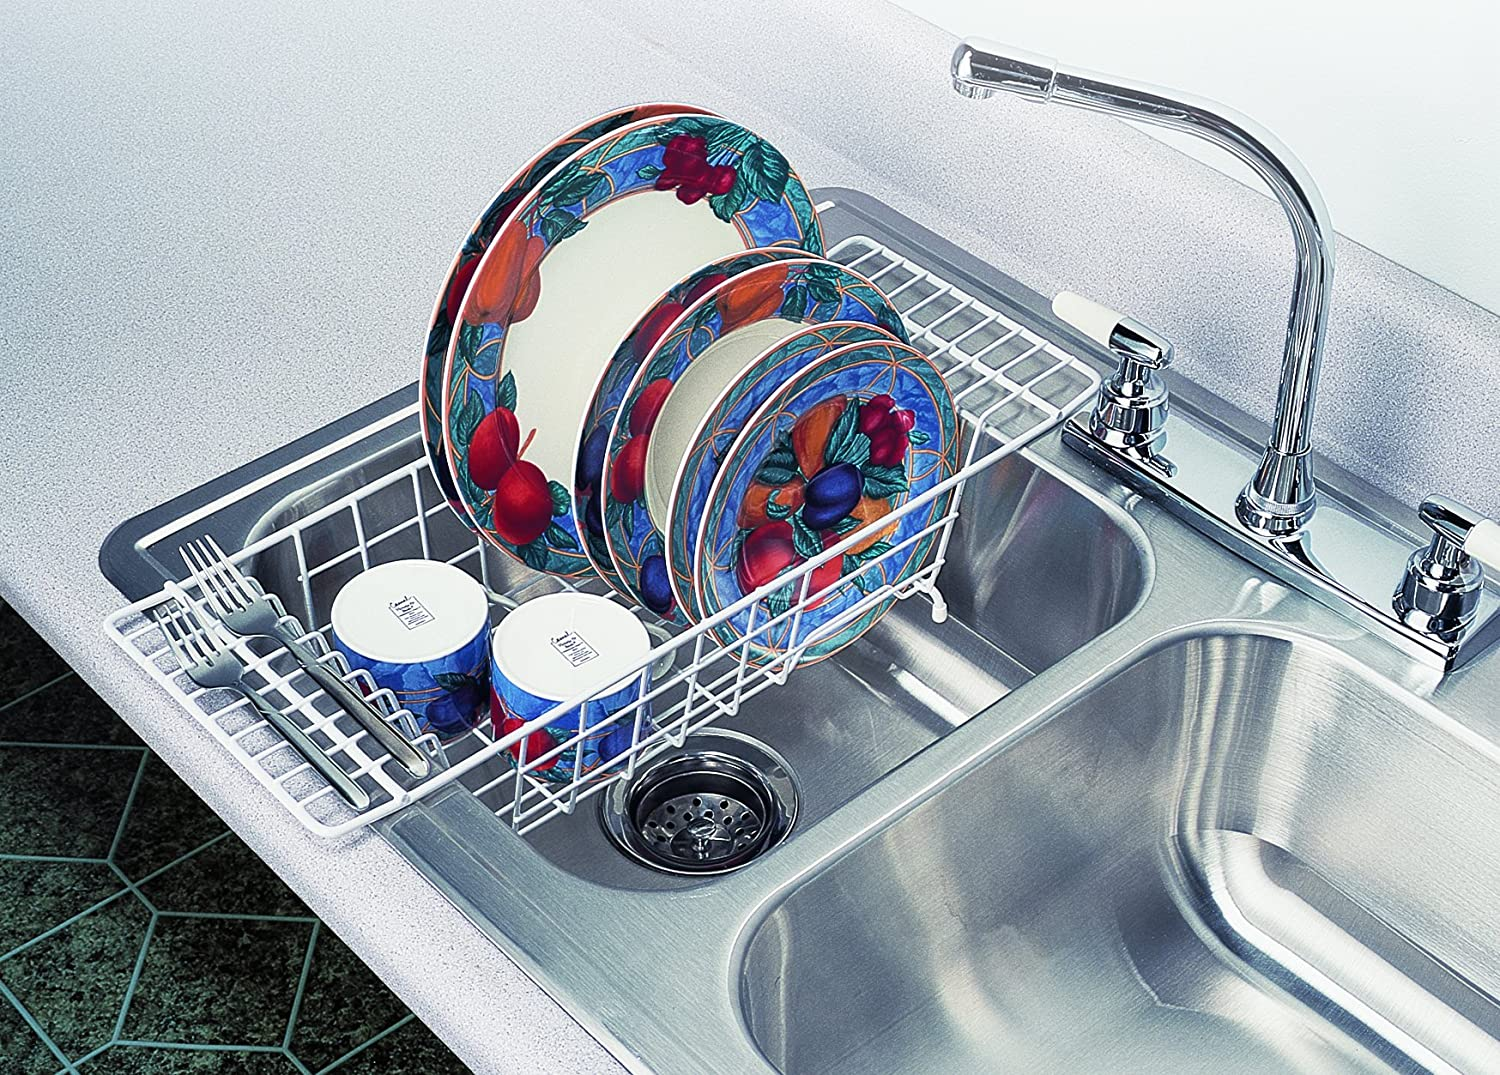 Over The Sink Drainer Counter Space Saver Dish Organizer